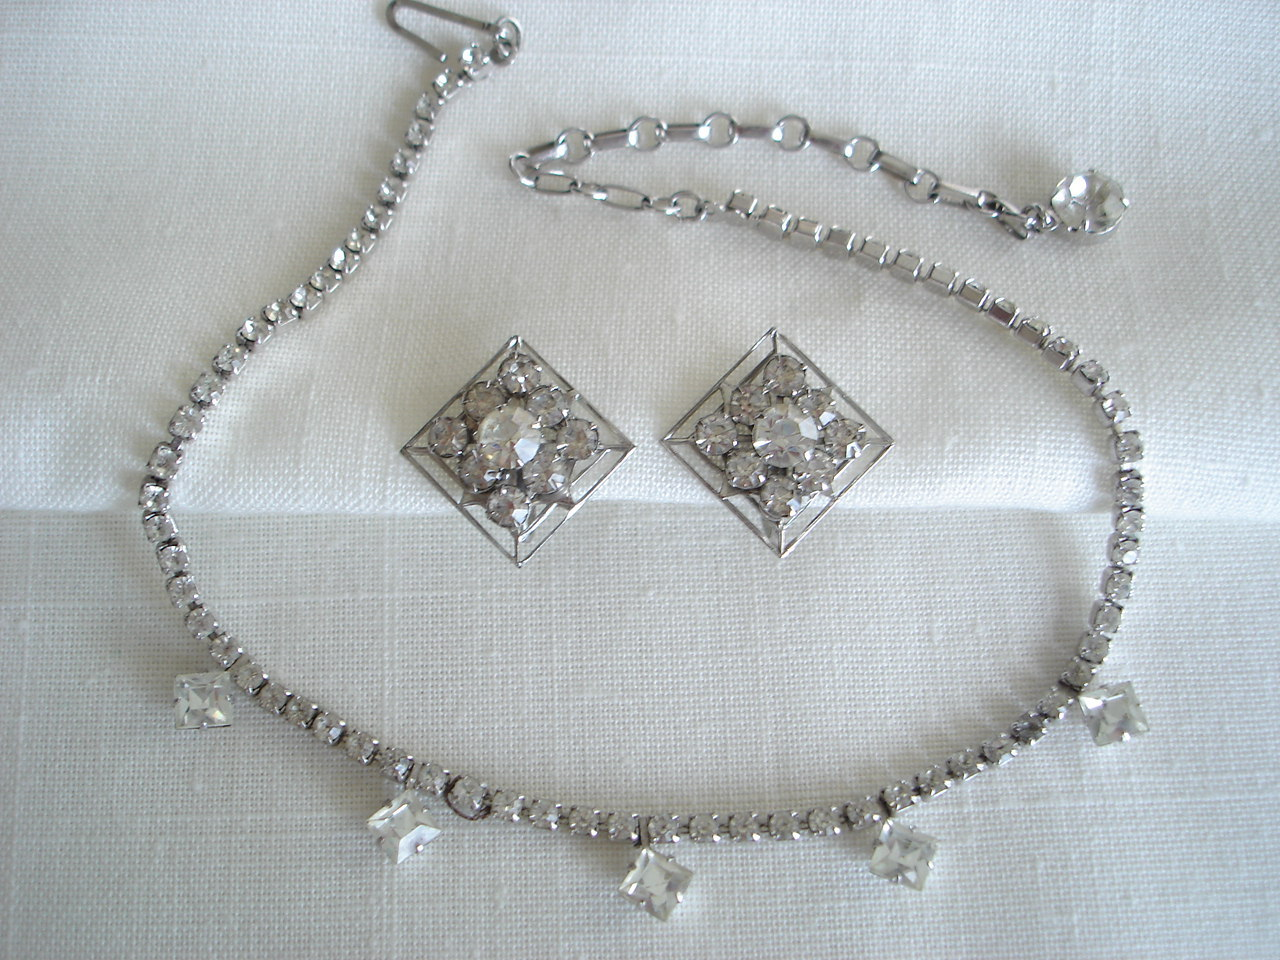 Vintage Silvertone Paved Rhinestone Necklace, Dangles